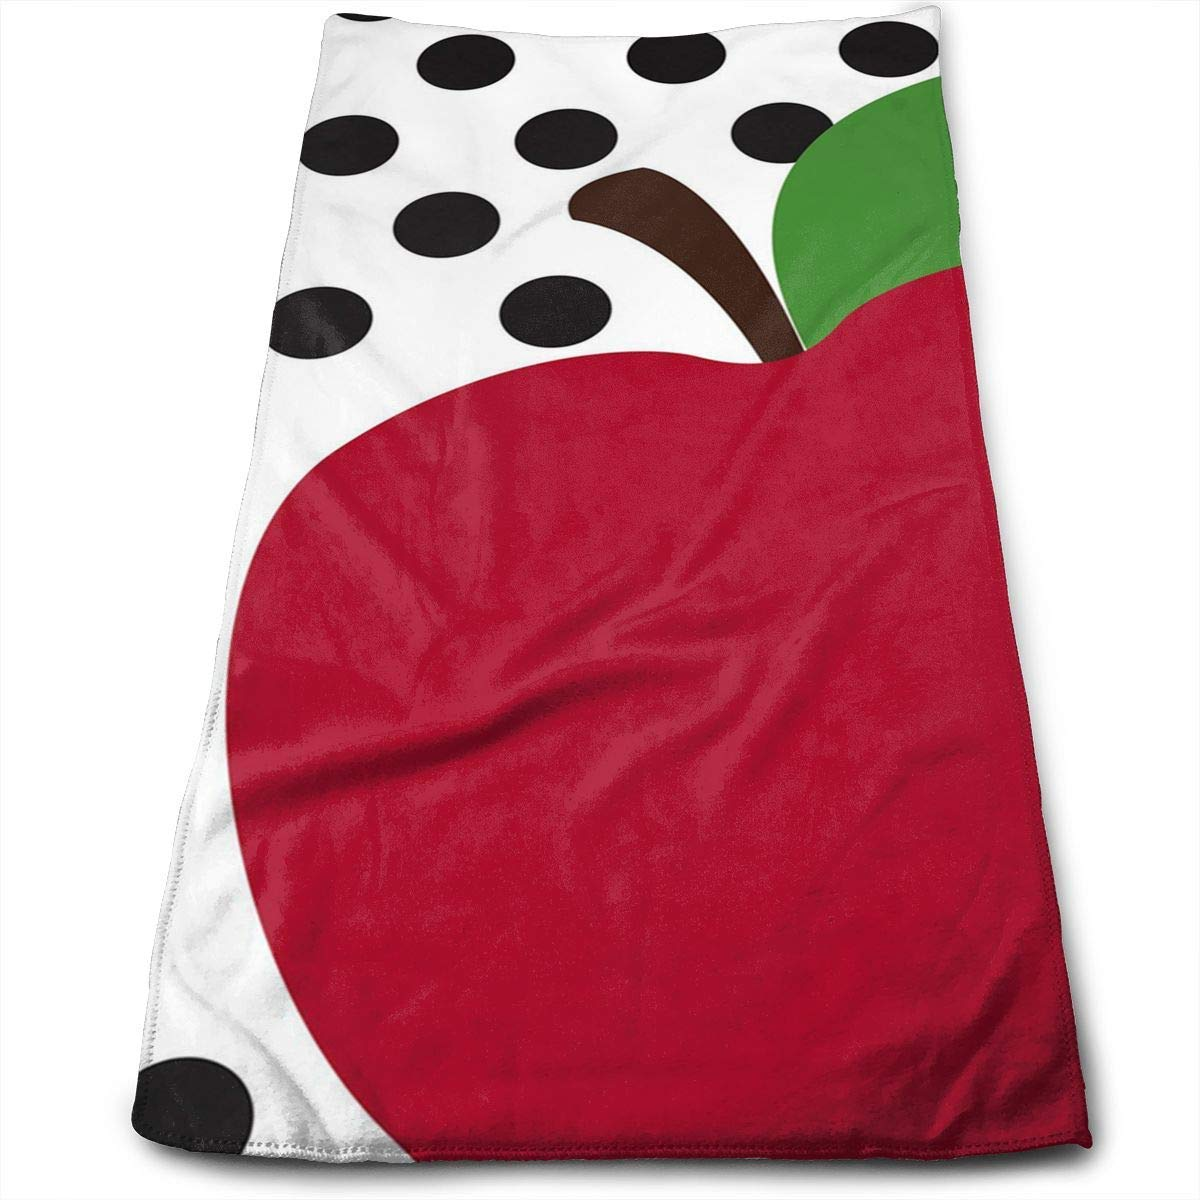 ERCGY Teacher's Apple Soft Polyester Large Hand Towel- Multipurpose Bathroom Towels for Hand, Face, Gym and Spa